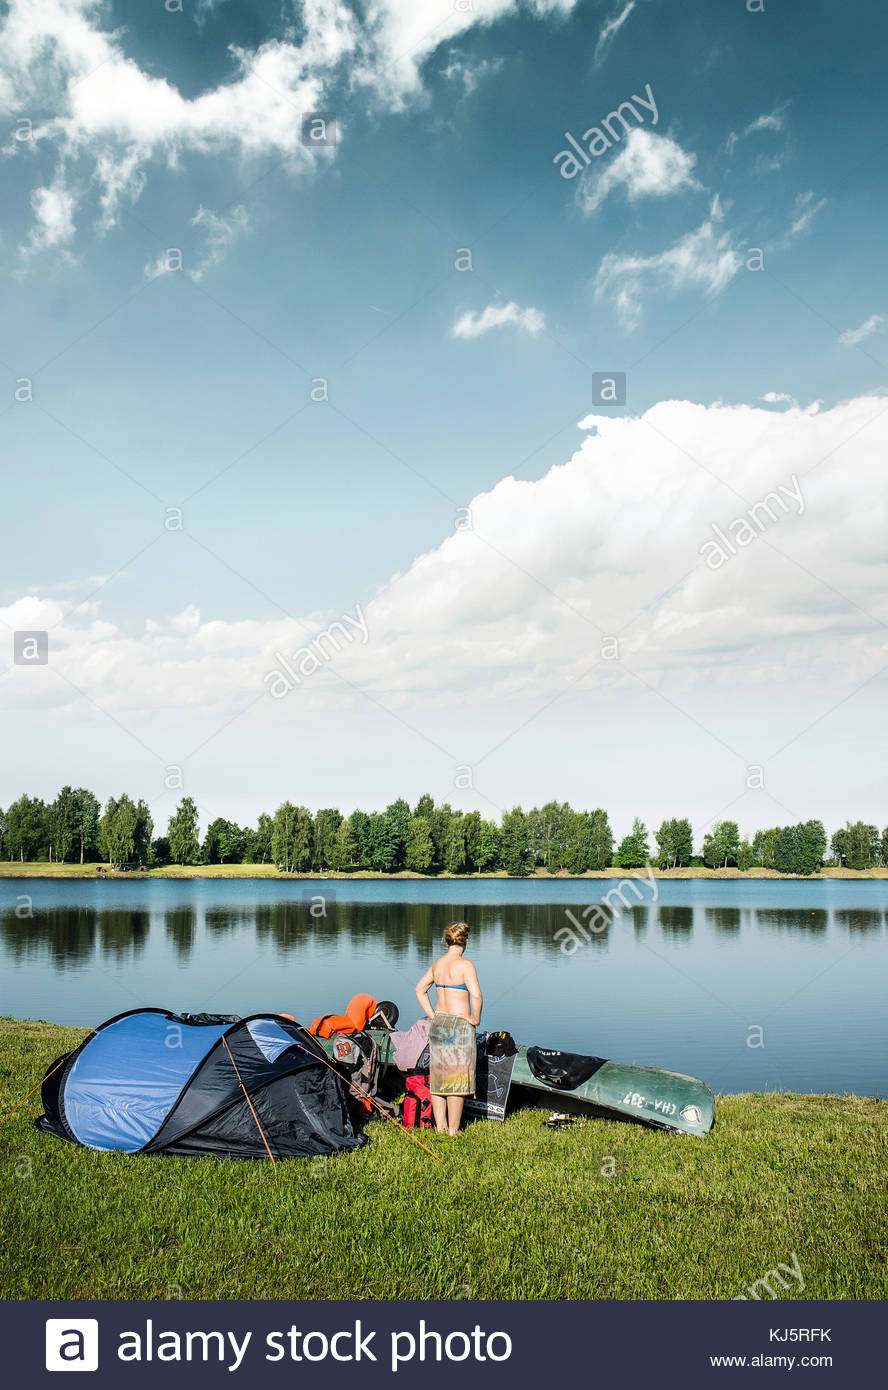 Camping by lake - Stock Image